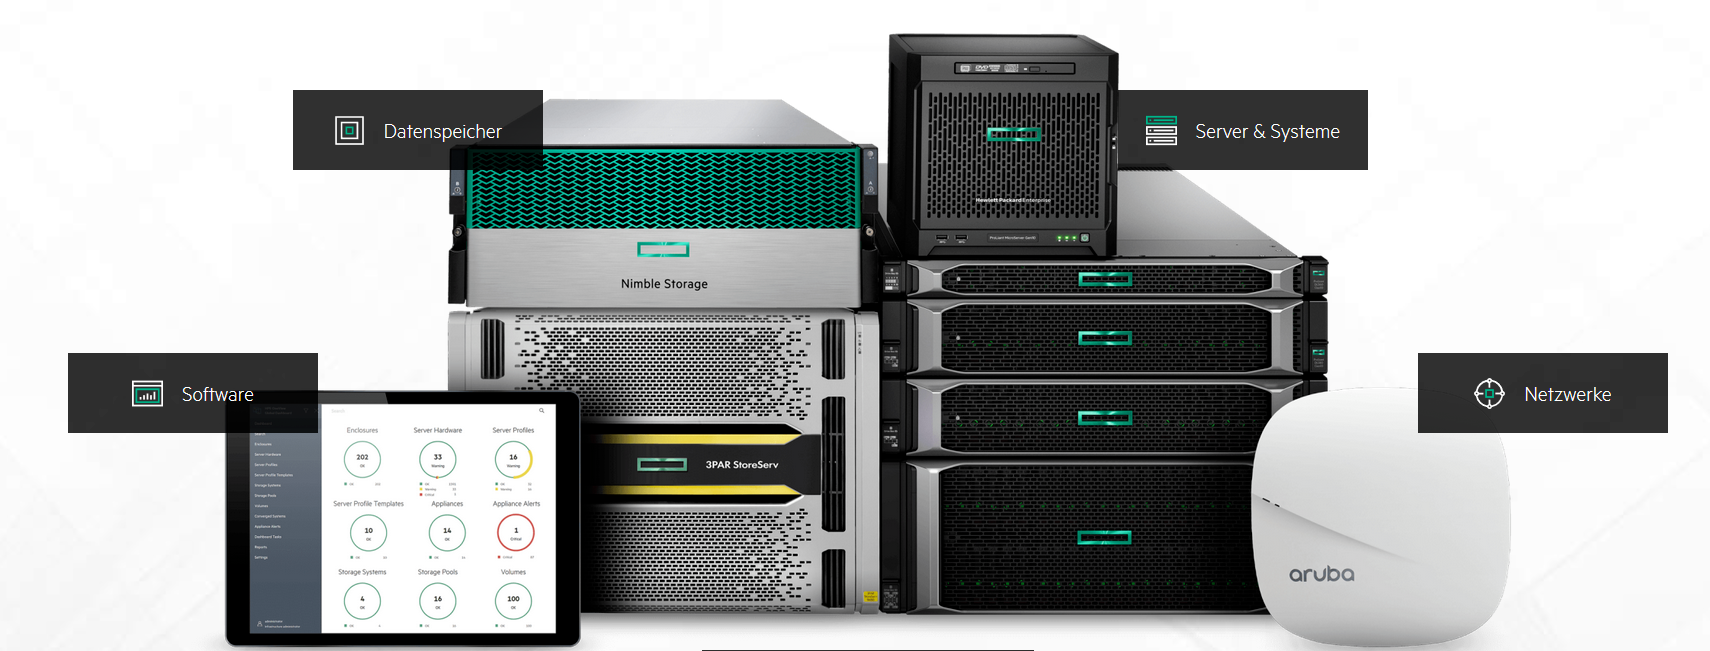 hp server storage cinteg